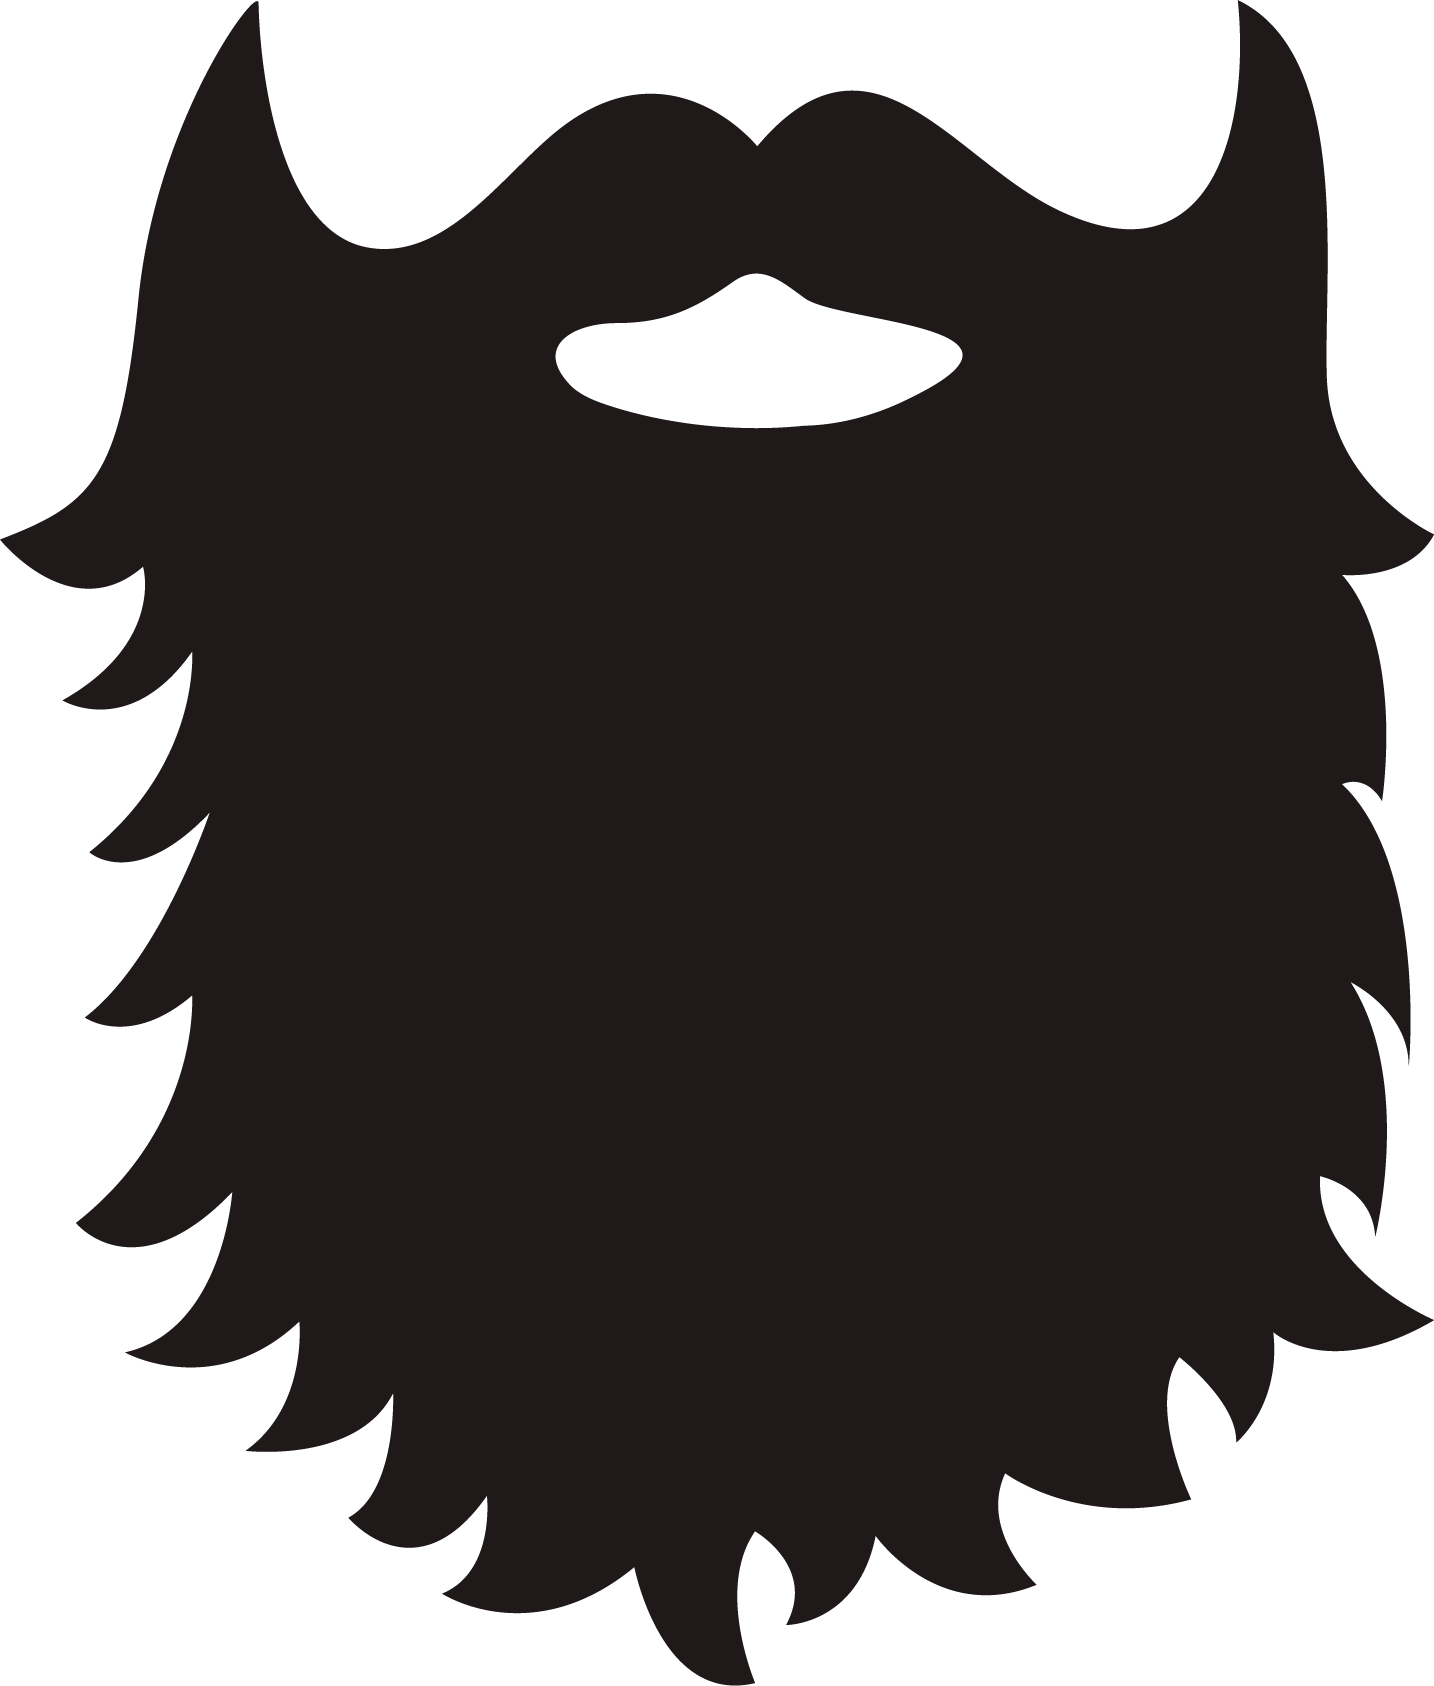 Wolverine beard png. Collection of free begirded